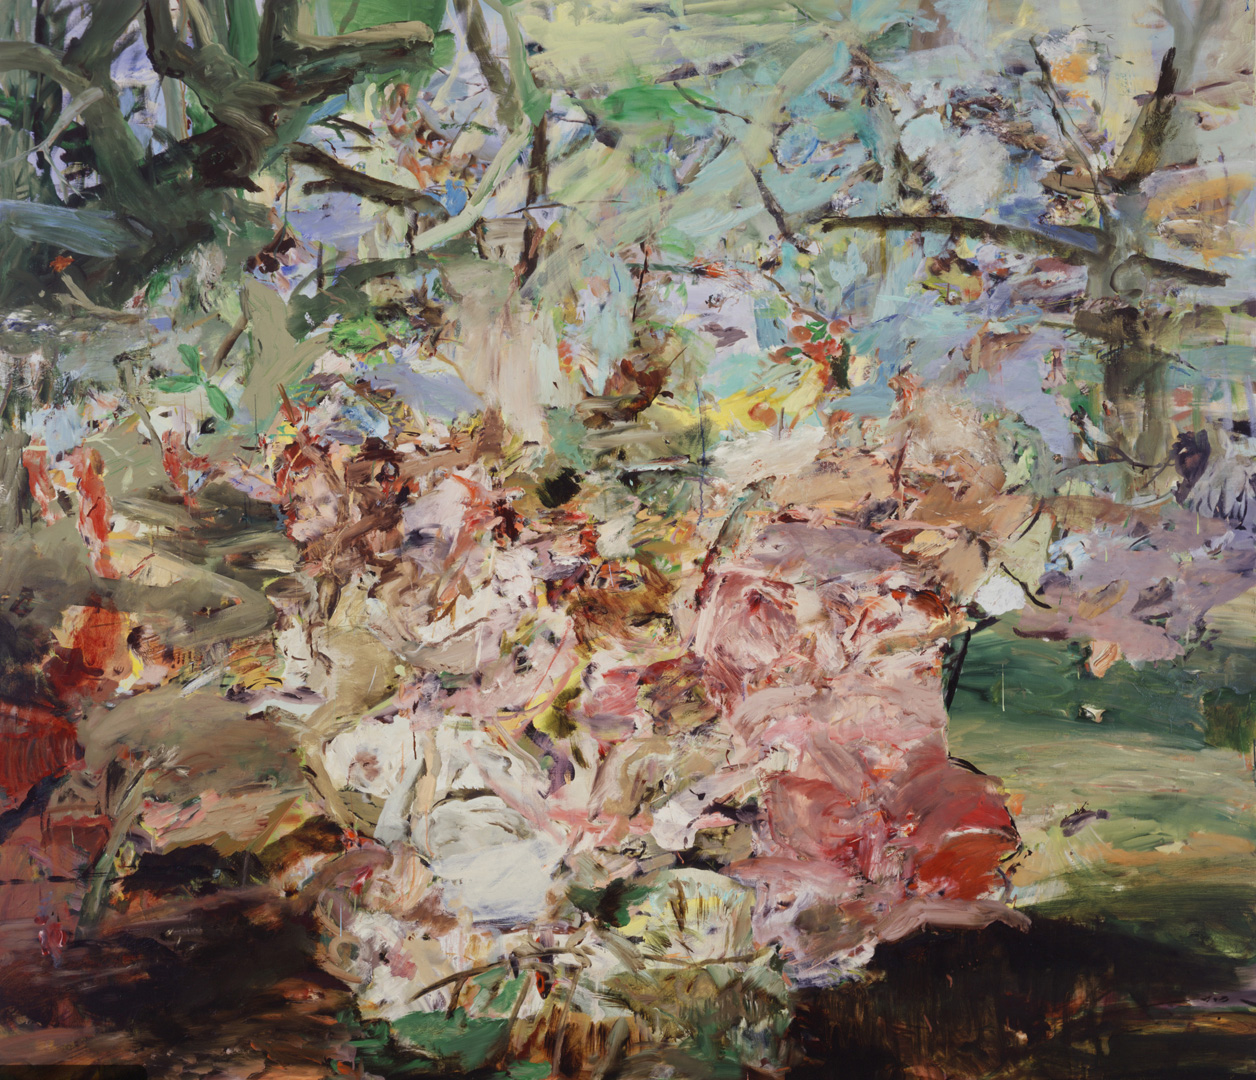 Cecily Brown - Figures in a Landscape 2, 2002, oil on linen